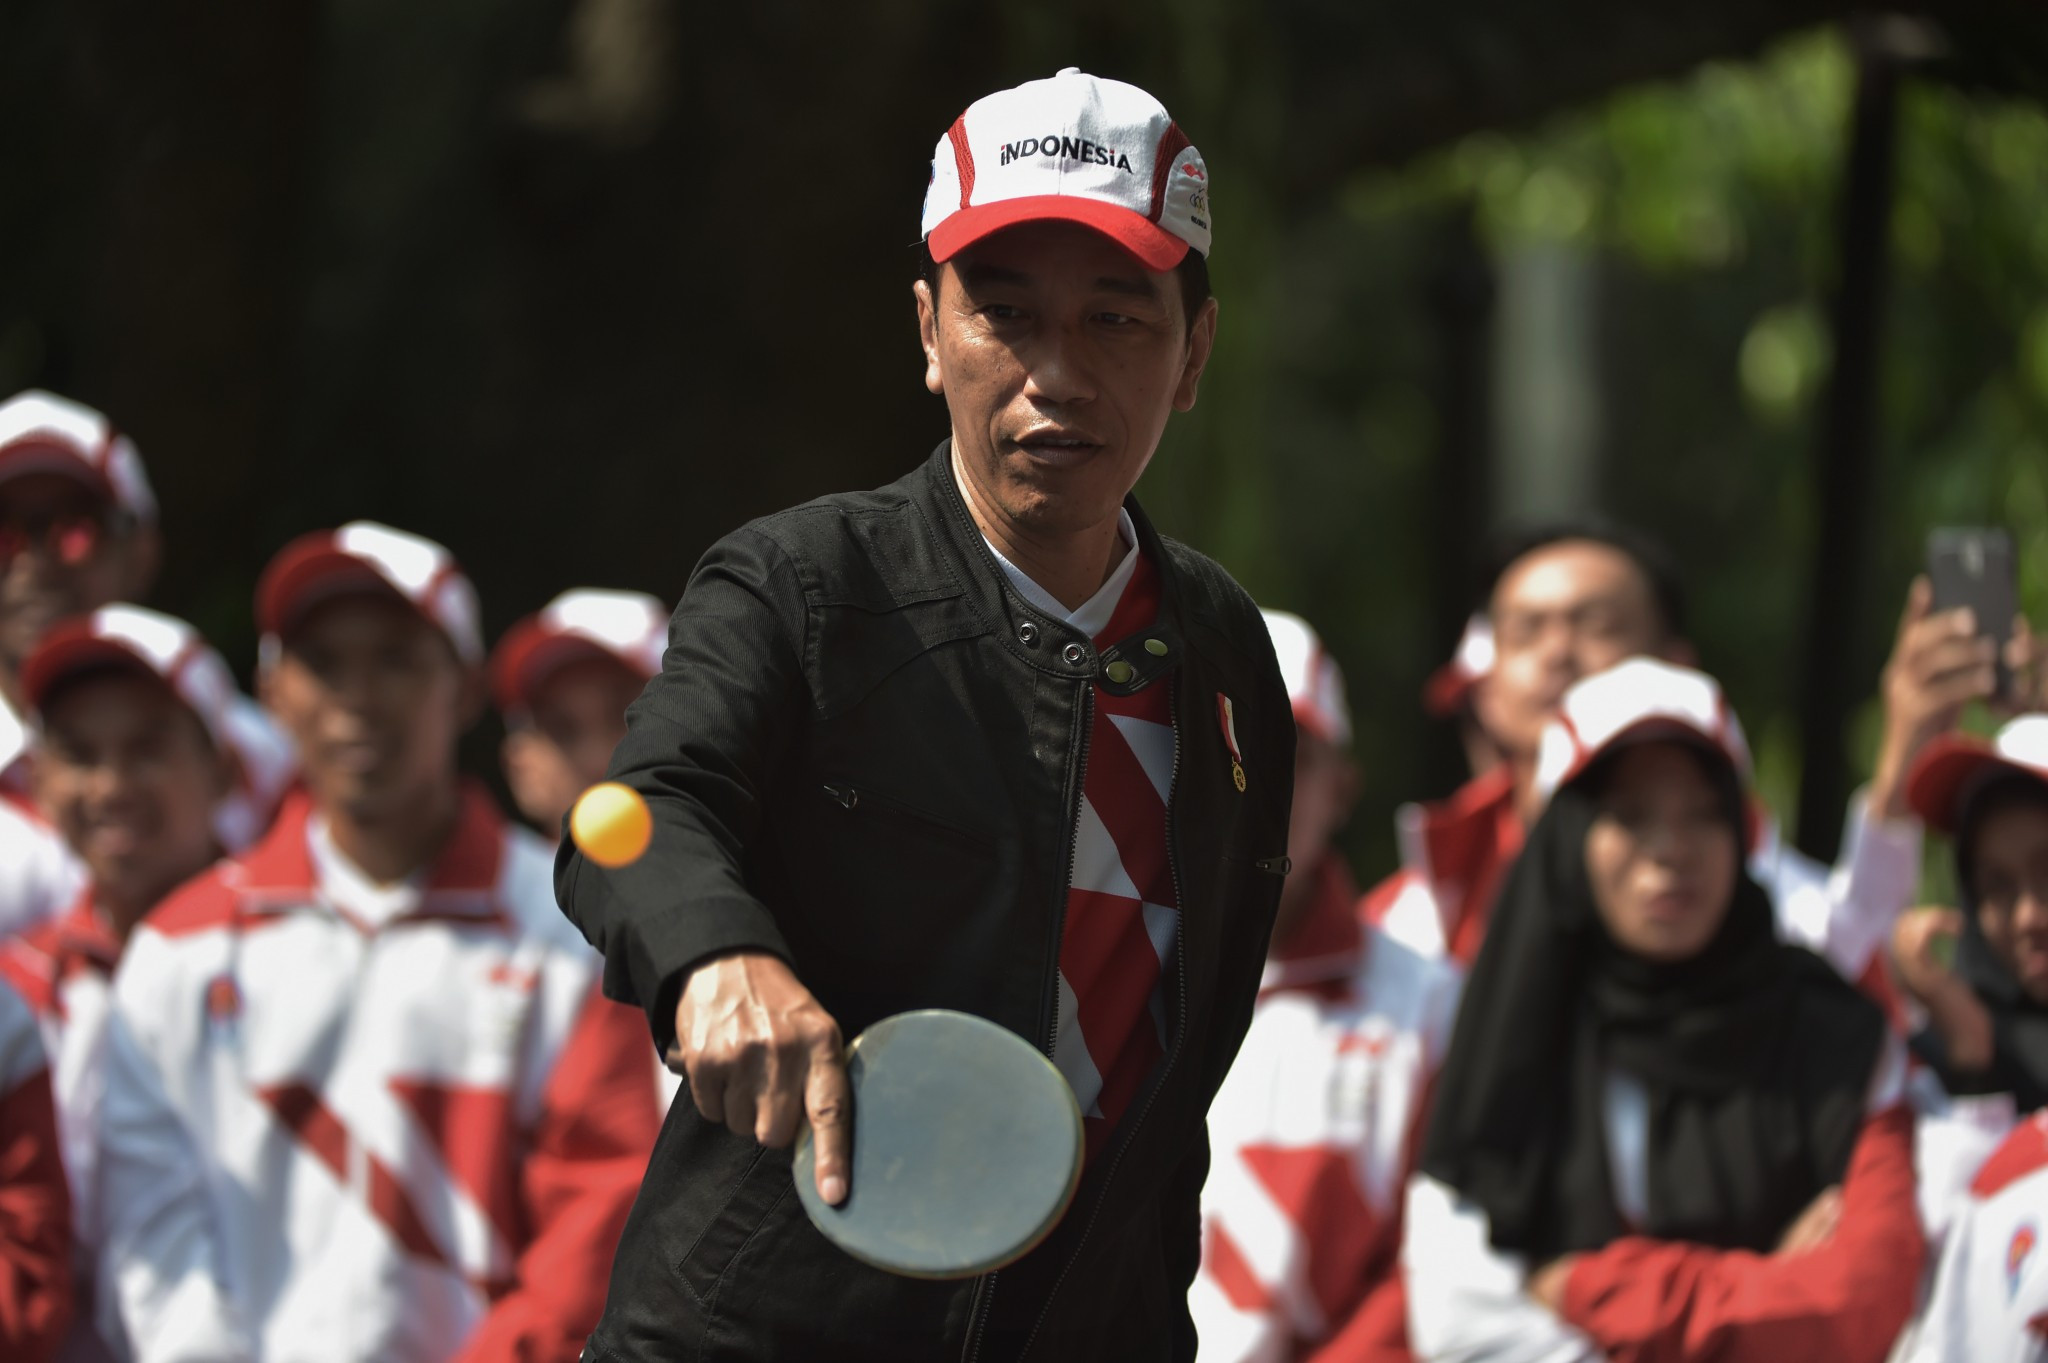 Indonesian President Joko Widodo will launch the countdown event ©Getty Images